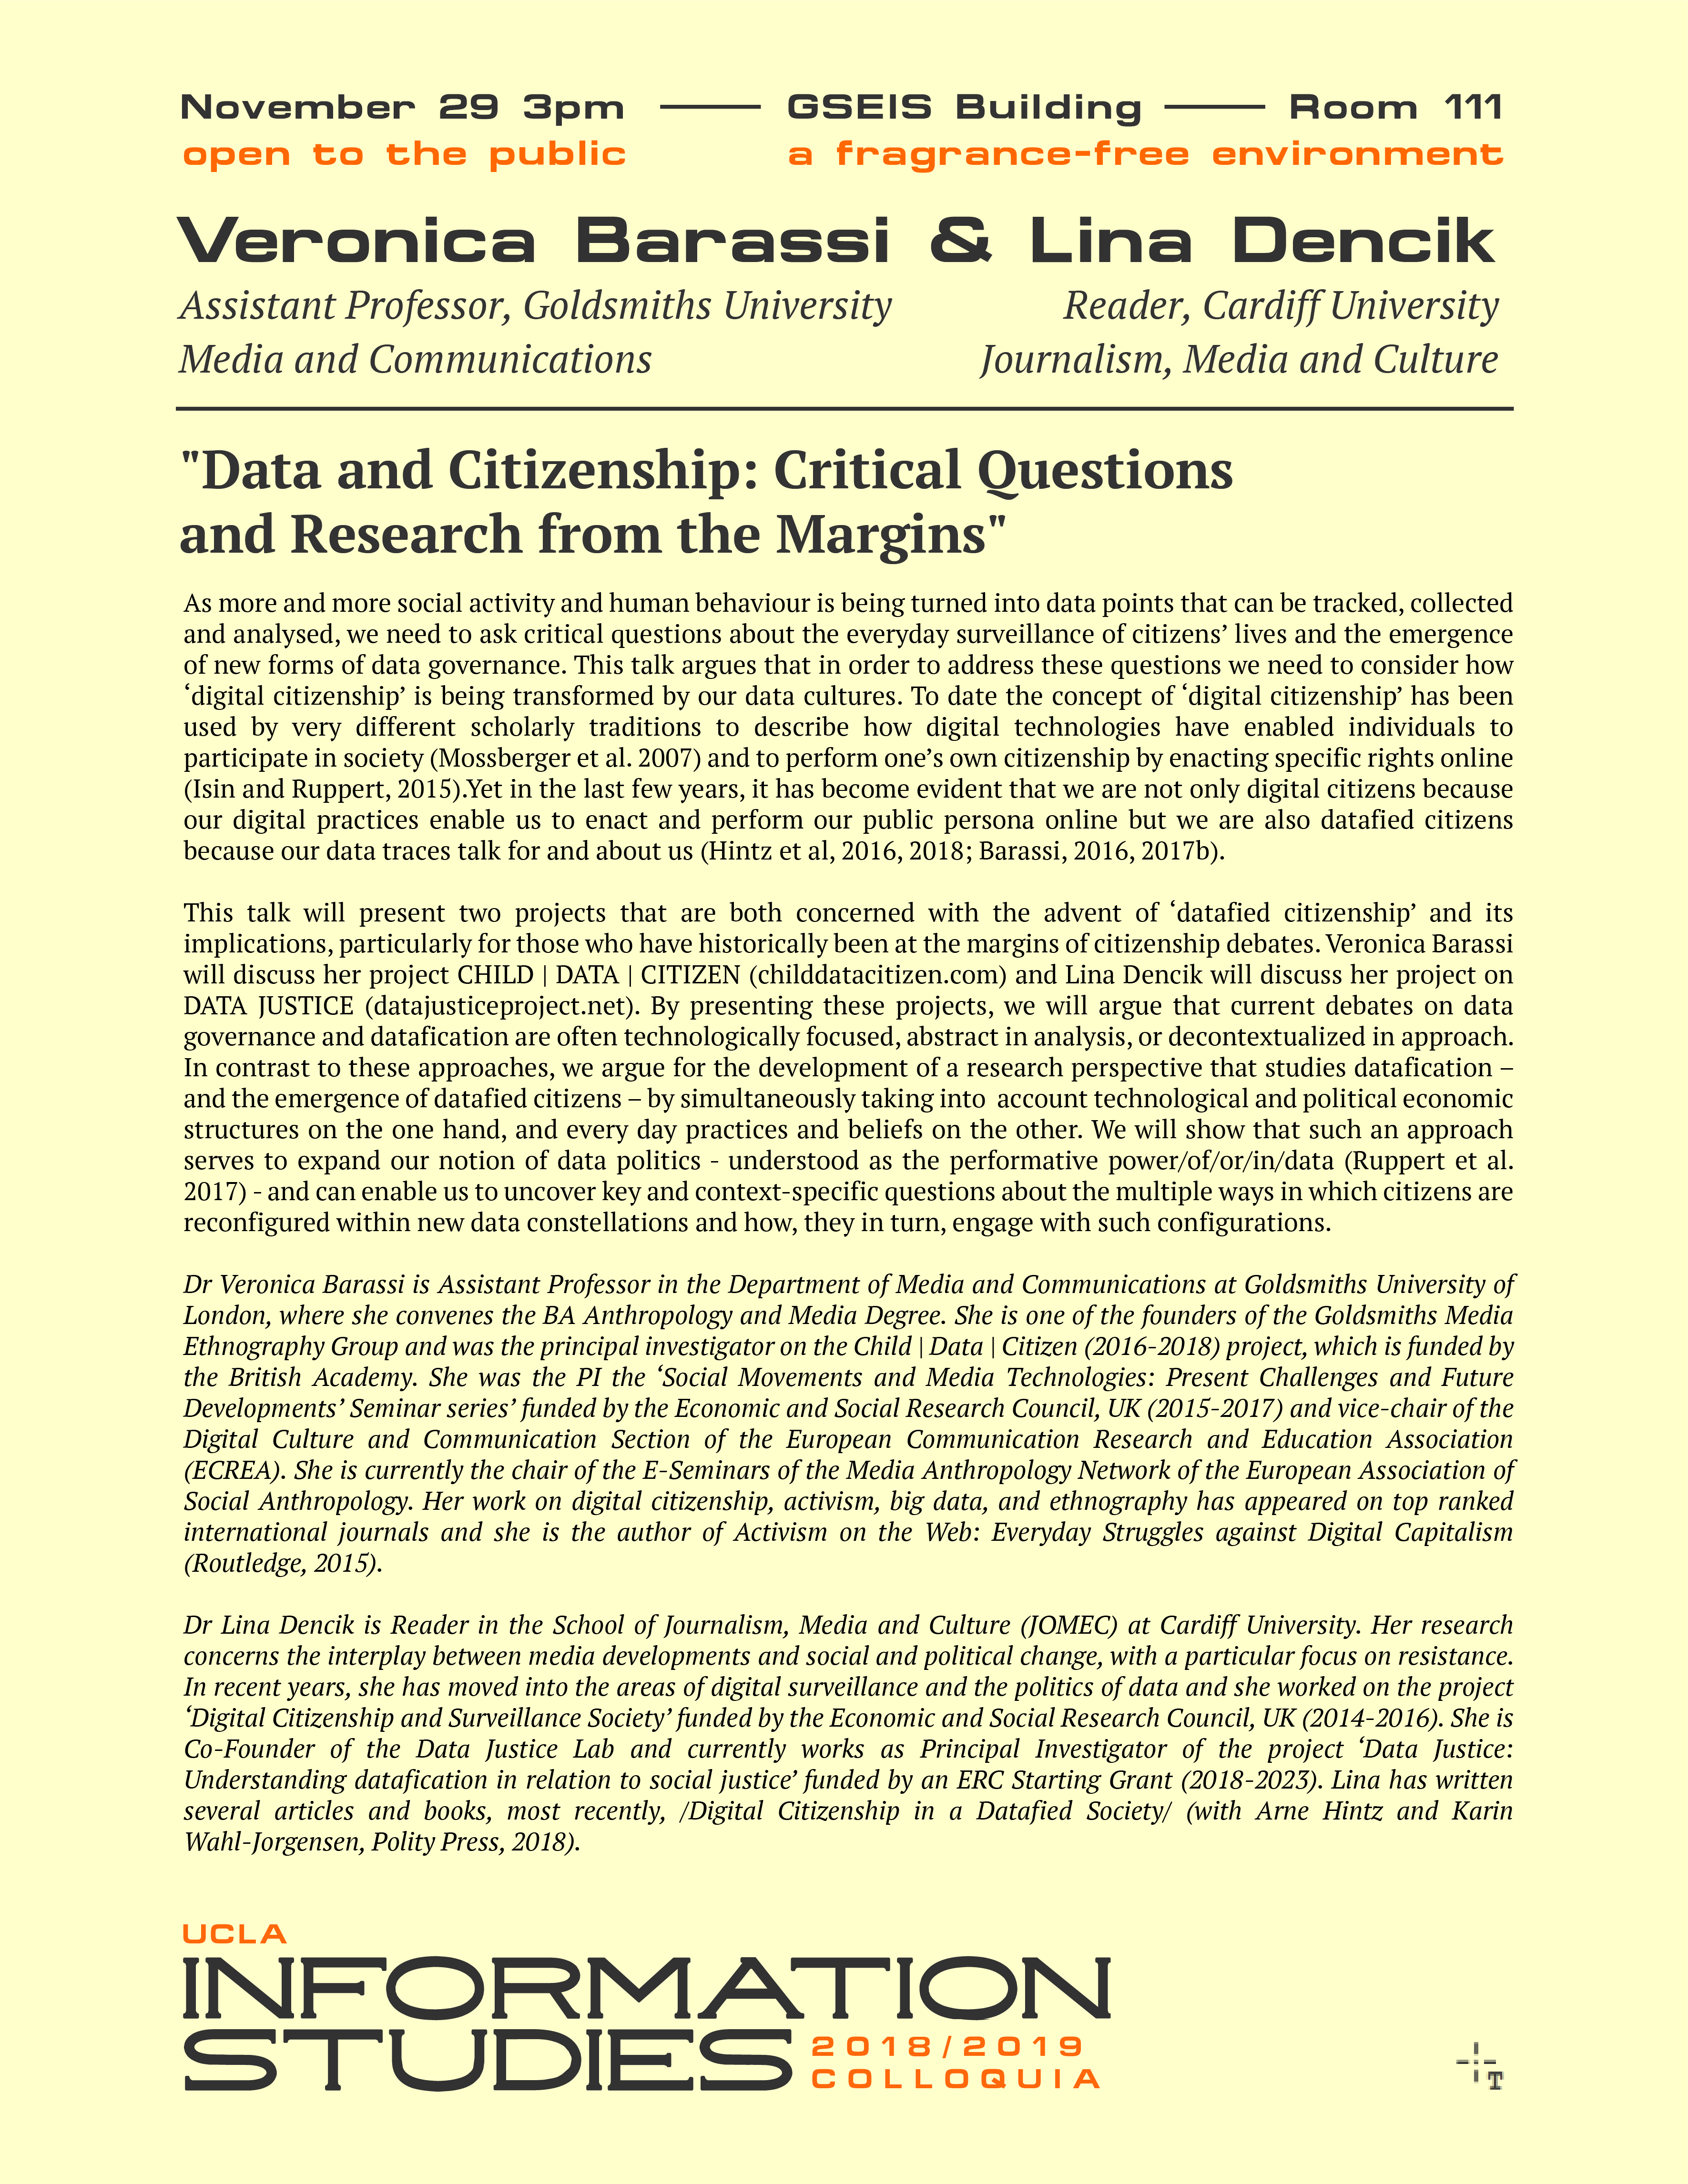 Data and Citizenship: Critical Questions and Research Perspectives from the Margins